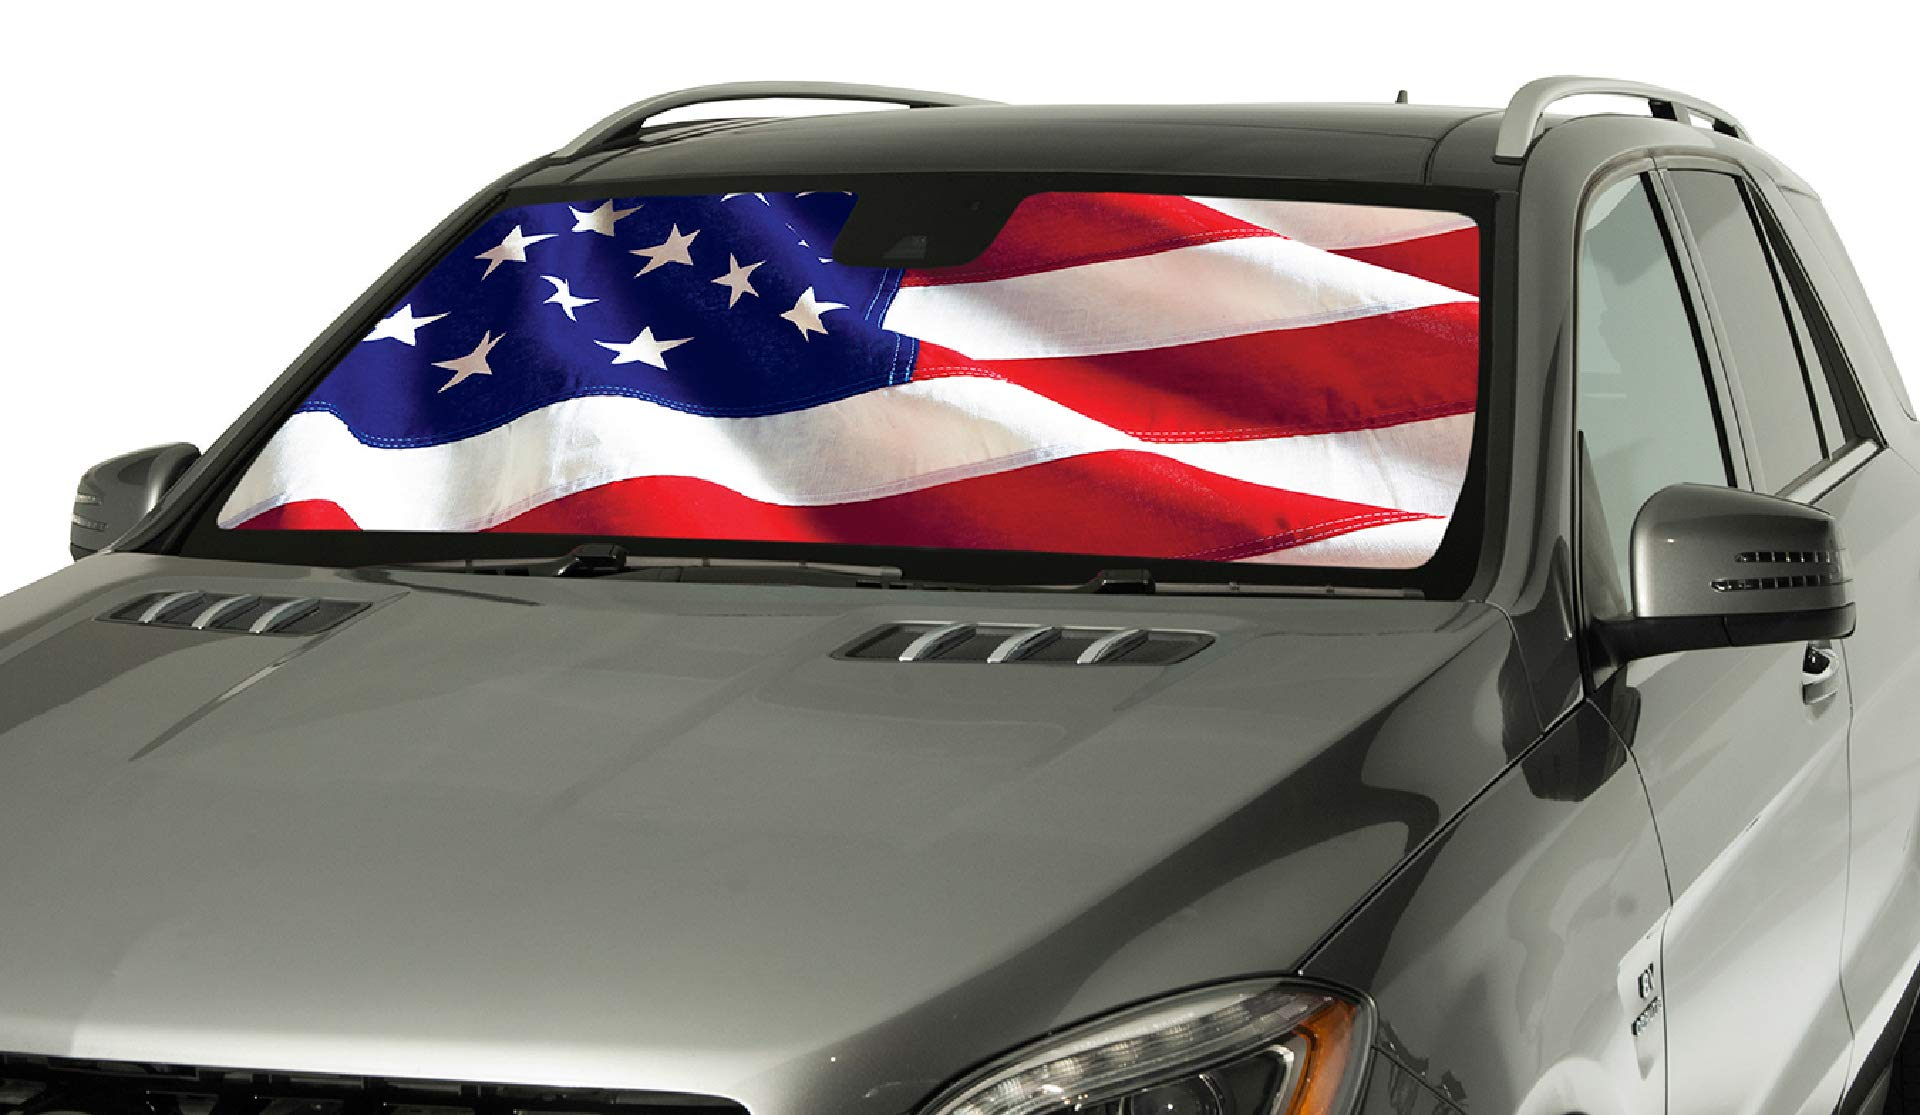 Silver Intro-Tech HM-04-S Custom Fit Windshield Snow Shade for Select Hummer H3 Models